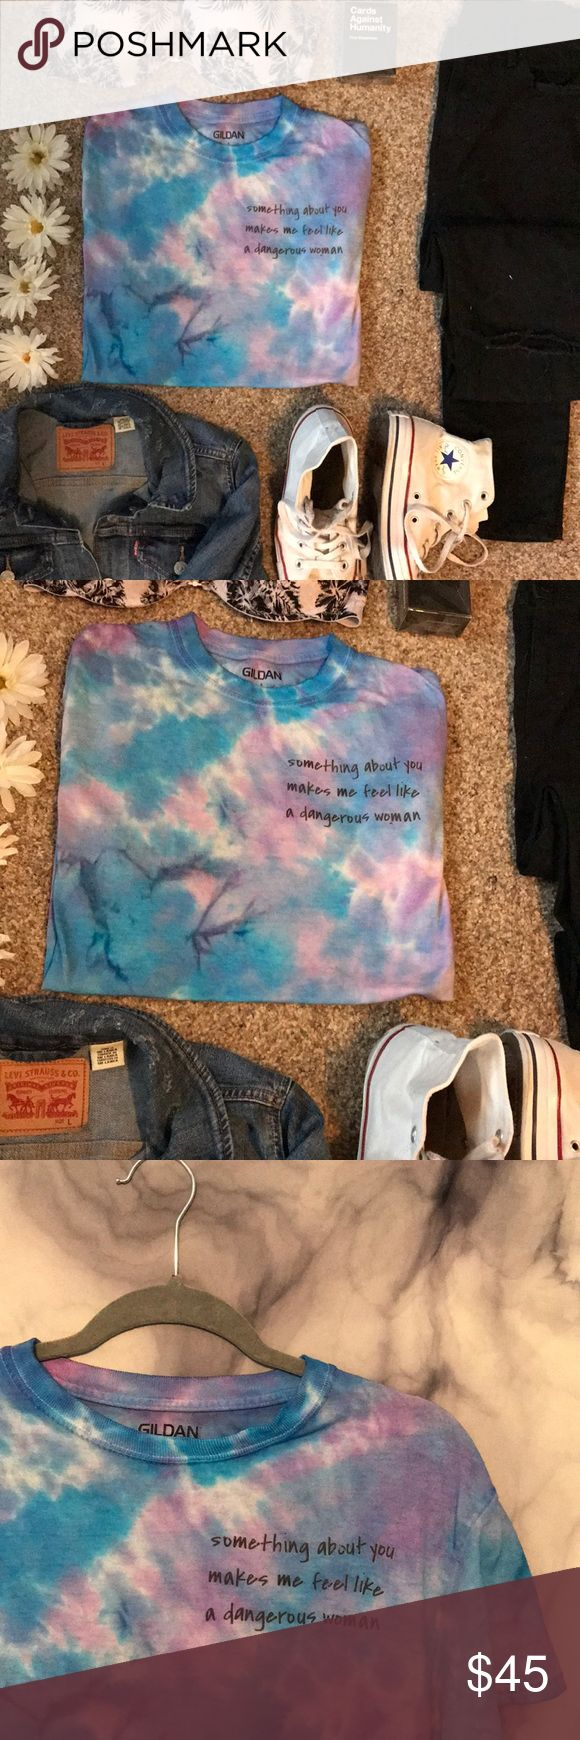 Handmade x Ariana Grande tye dye tee Don't need permission. I have made my decision that something about you makes me feel like dangerous women. Ariana Grande inspired handmade tye dye tee! Match this top with a Levi jean jacket to highlight those darker streaks, black high waisted Urban Outfitters skinny jeans, PINK palm tree bra underneath, and white basic high top Converse! Feel like a dangerous women yet? 🌷🌷🌷 Size: small. Tops Tees - Short Sleeve